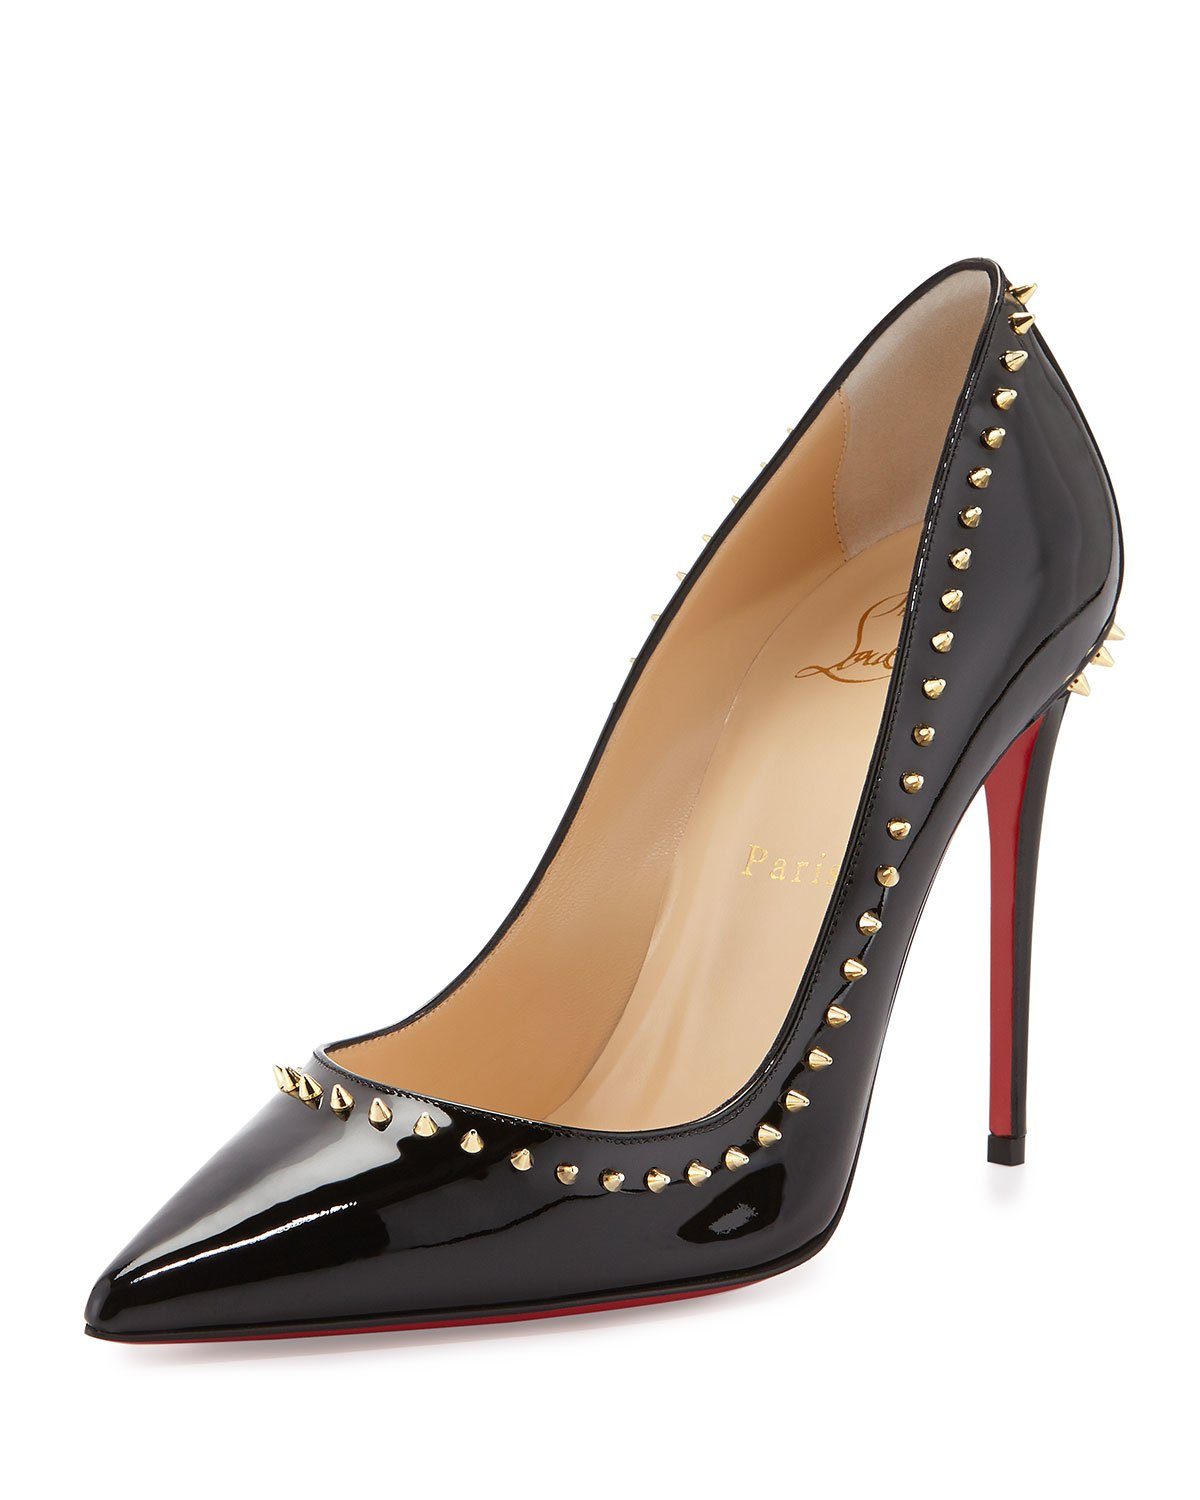 cheap louboutin shoes knockoffs - Christian louboutin Anjalina Studded Patent Leather Pumps in Gold ...